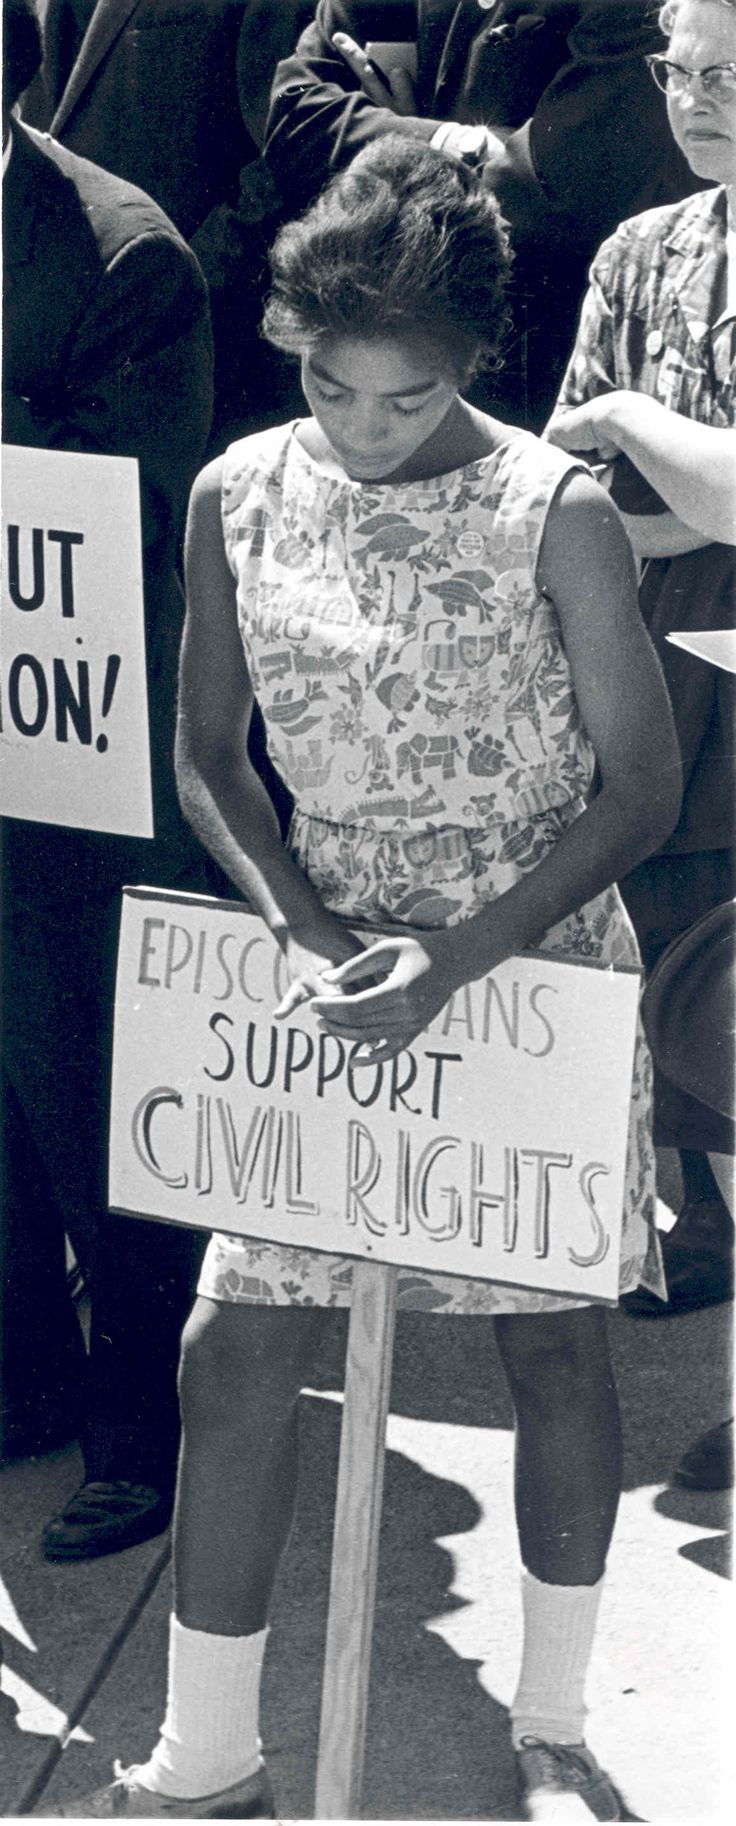 Protester at the March on Washington, March 18, 1963    The Afro-Anglican Archives are part of the Archives' mission to acknowledge under examined aspects of the Church's spiritual and cultural heritage, drawing on evidence of its continuing evangelization to people of color and the descendants of the African diaspora. Copyright 2011. The Archives of the Episcopal Church (DFMS)